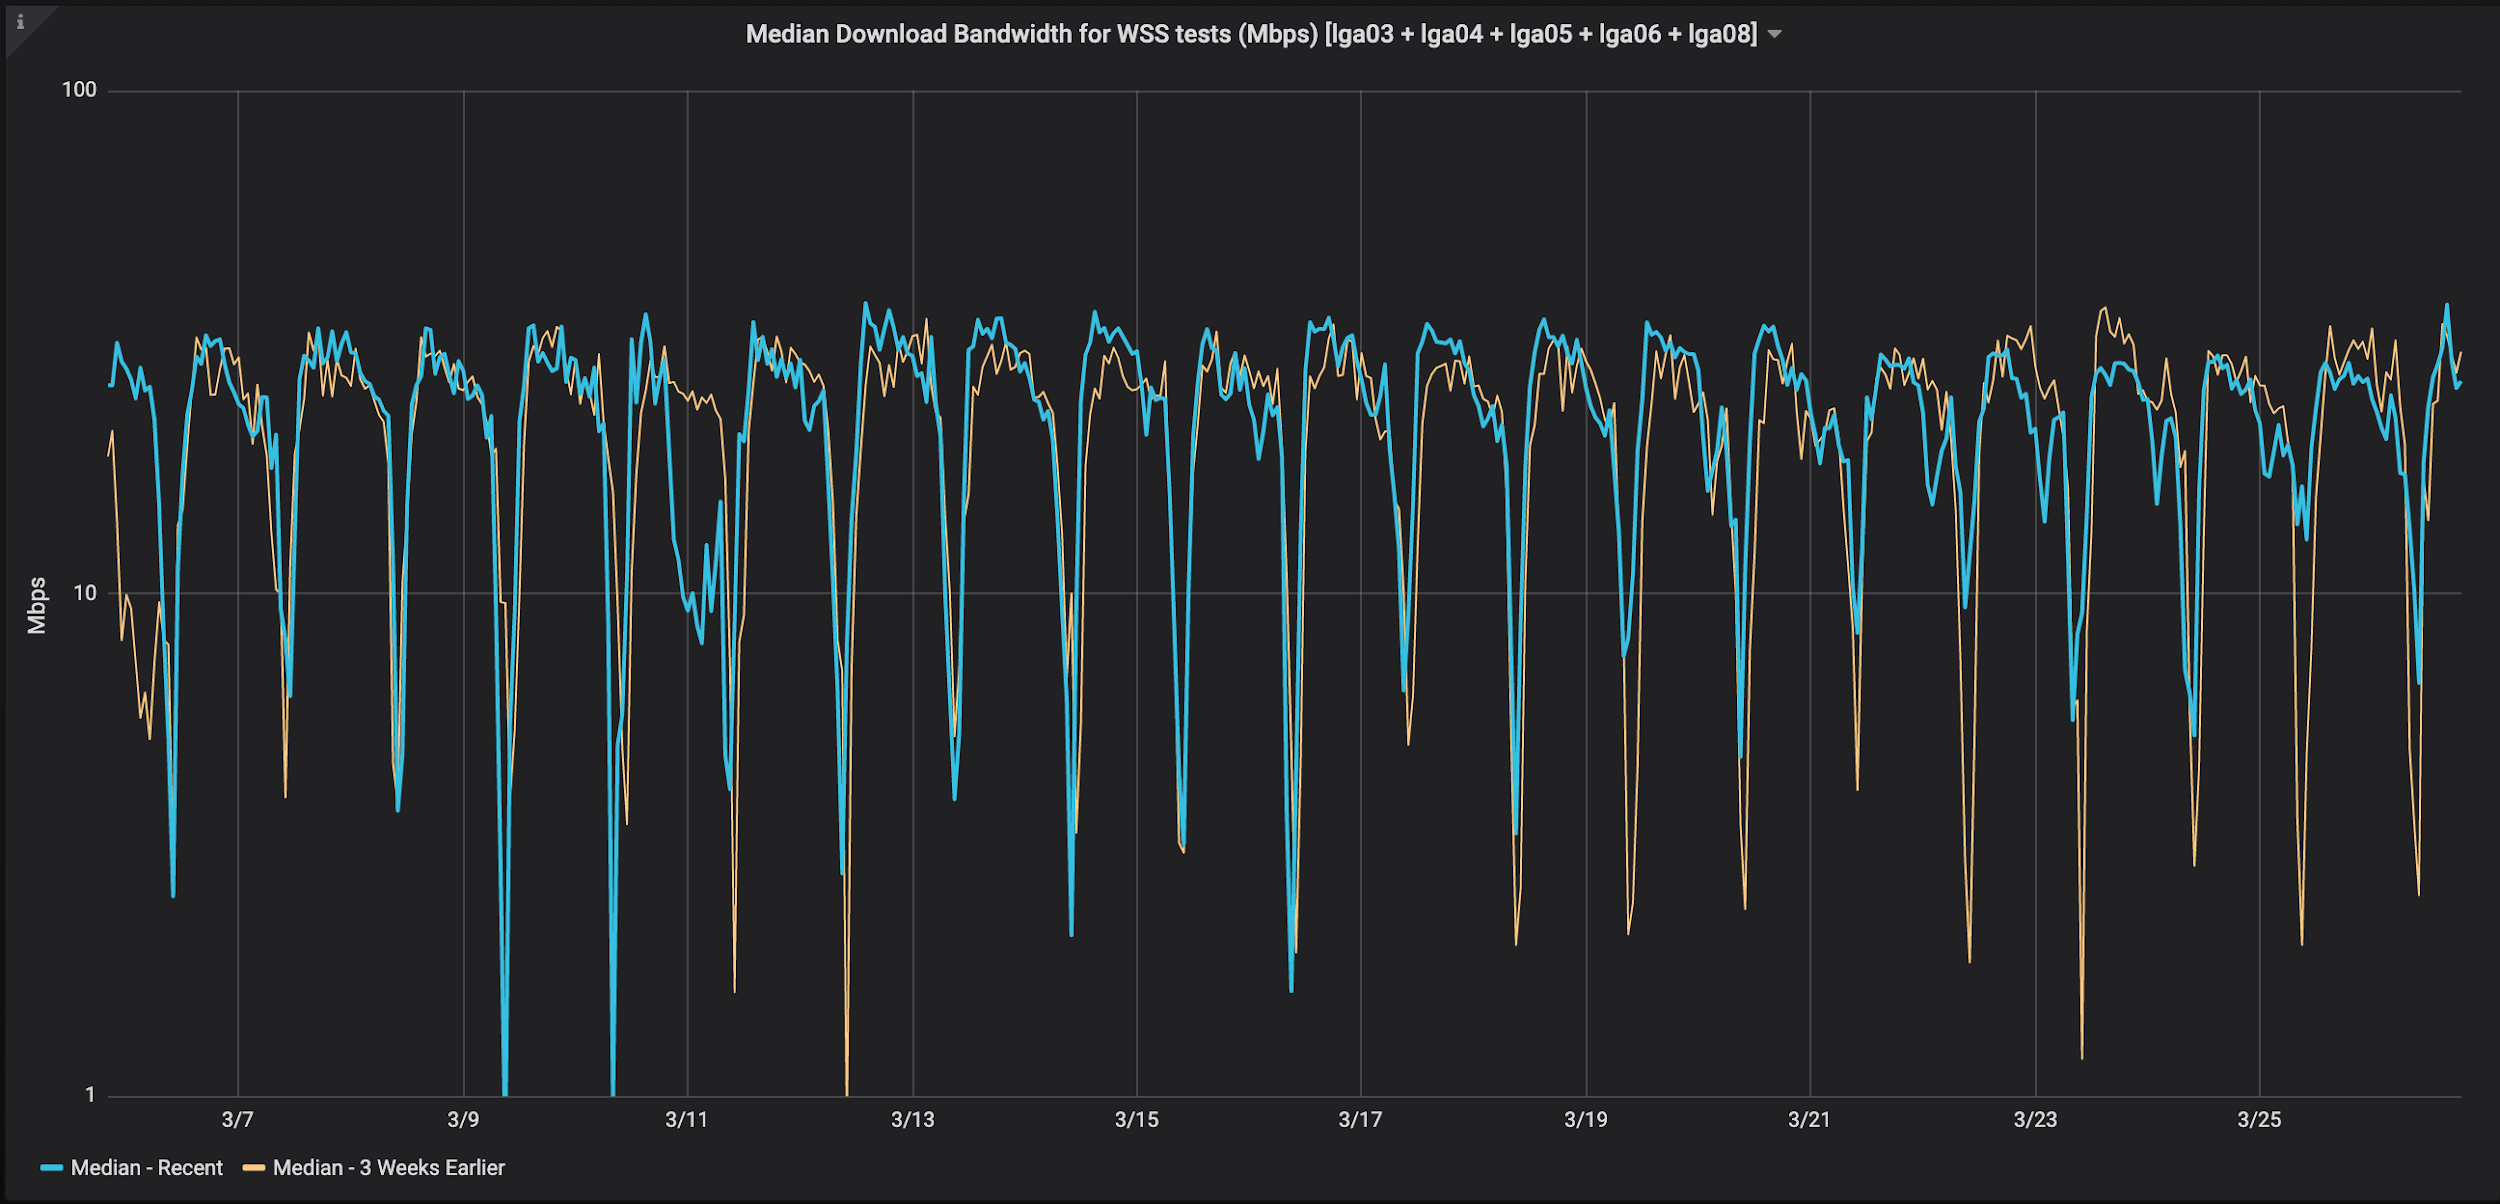 Median Download Bandwidth for WSS tests, New York, USA (Mbps)